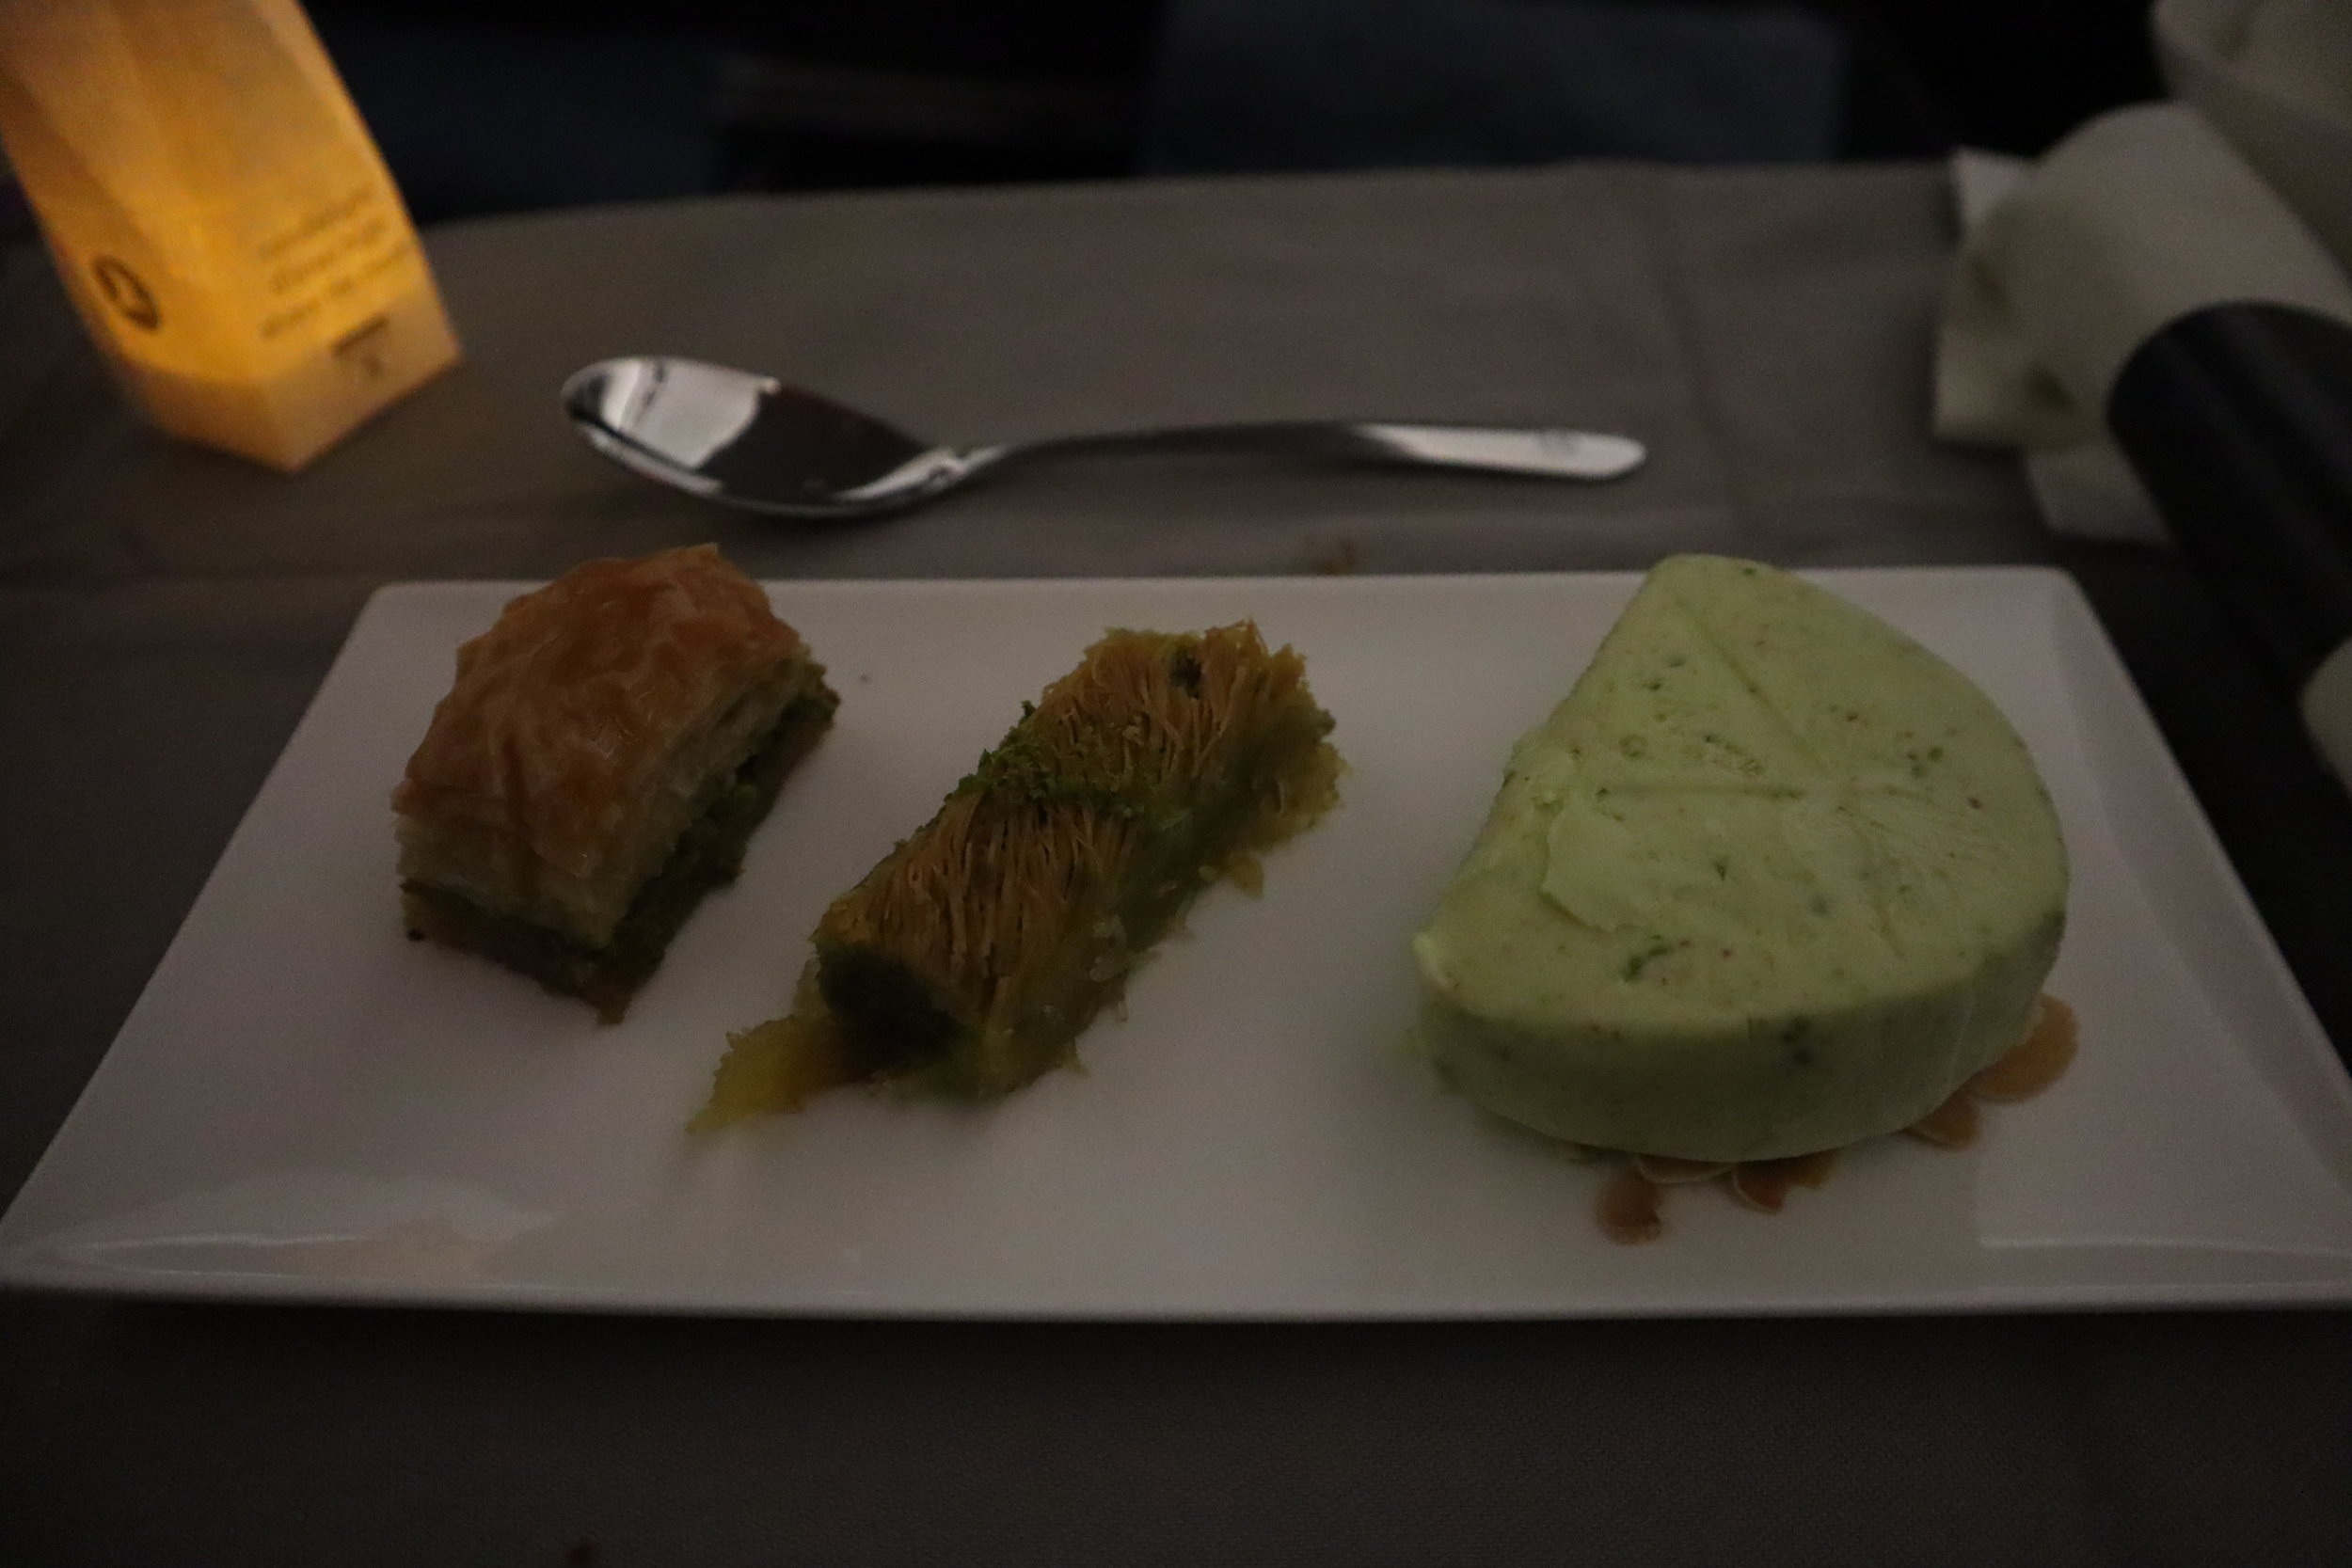 Turkish Airlines A330 business class – Pistachio ice cream and baklava